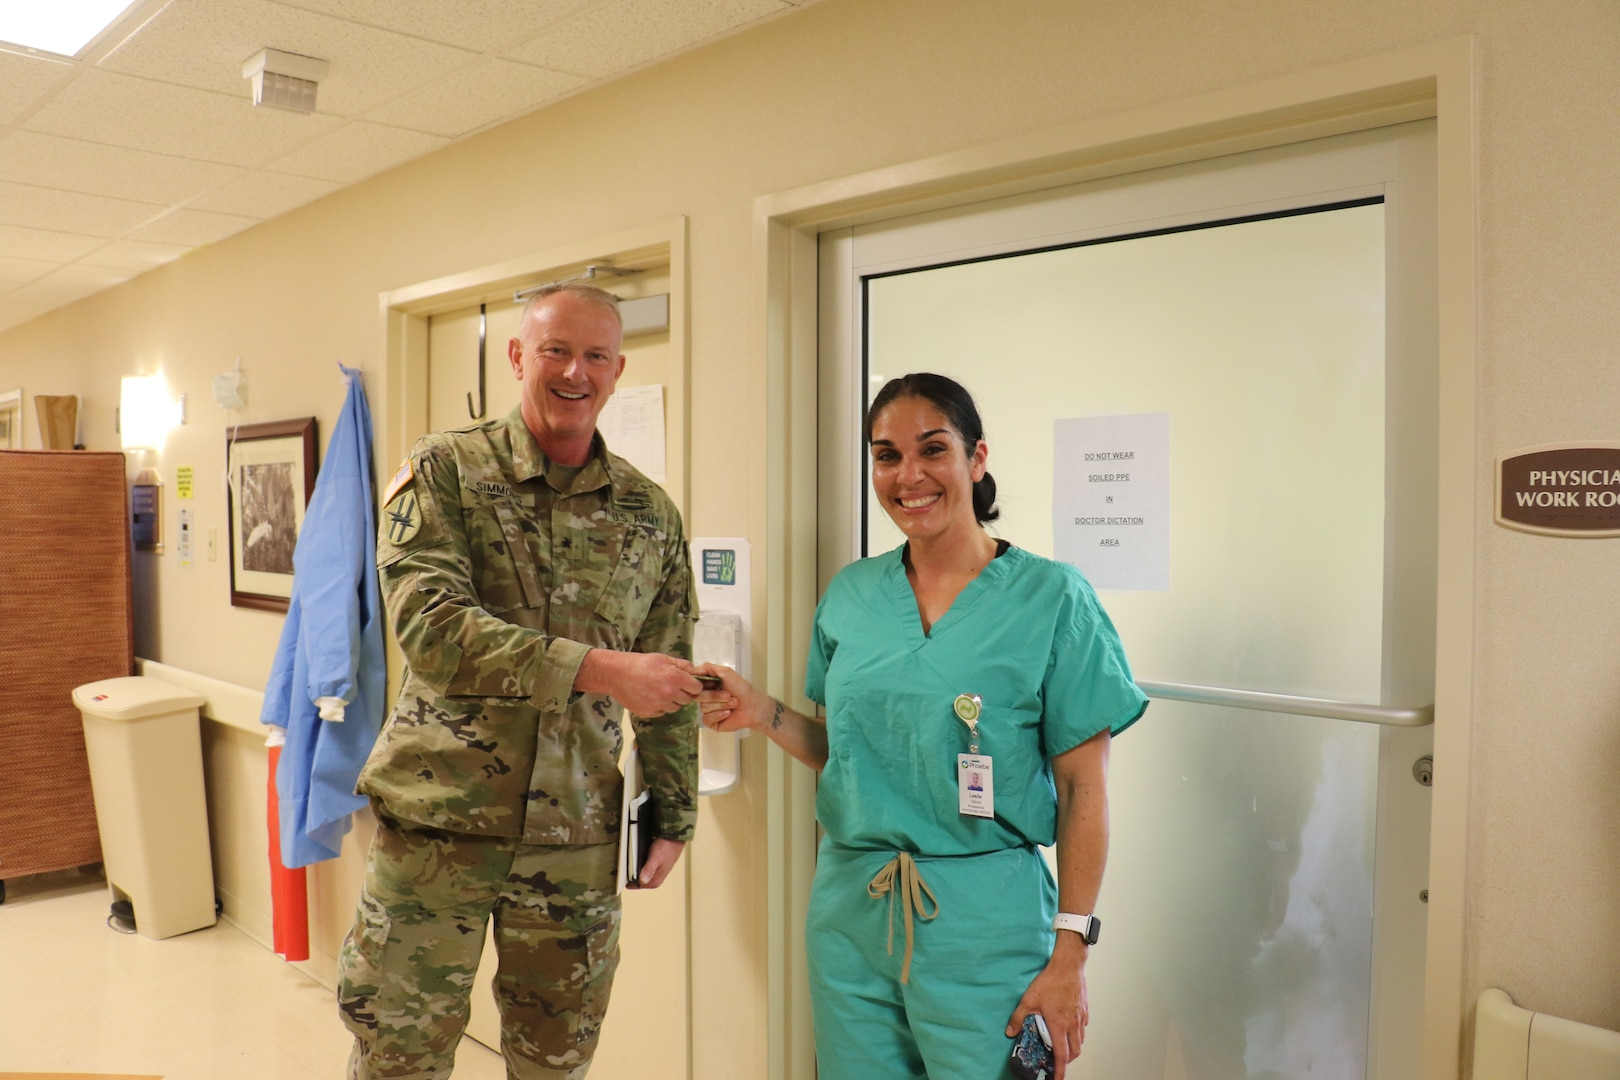 Gen. Randall Simmons, commander, Georgia Army National Guard, recognized Spc. Leslie Davila, a medic with the 2nd Battalion, 121st Infantry Regiment, 48th Infantry Brigade Combat Team, for her contributions to the fight against COVID-19 during a tour of the Phoebe Putney Memorial Hospital in Albany, Georgia, March 28, 2020. Davila and her son, also with the Guard, were both assigned as medics at the hospital.